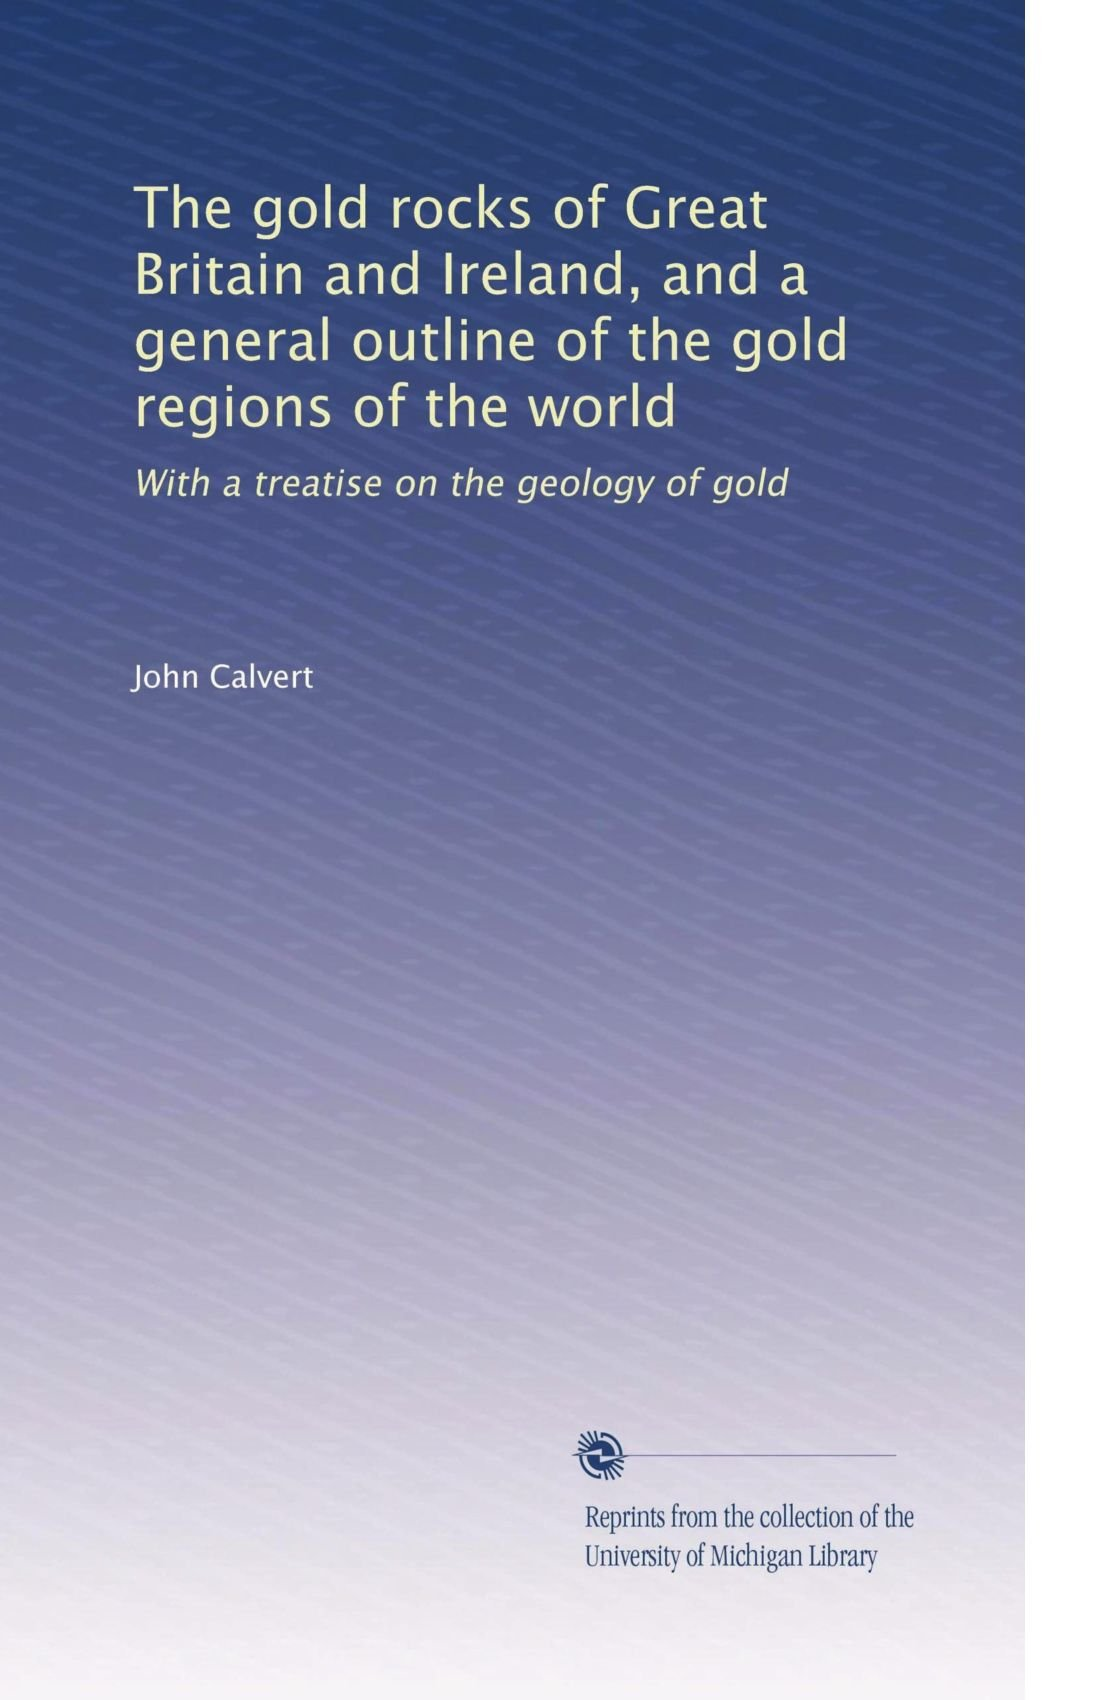 Download The gold rocks of Great Britain and Ireland, and a general outline of the gold regions of the world: With a treatise on the geology of gold pdf epub